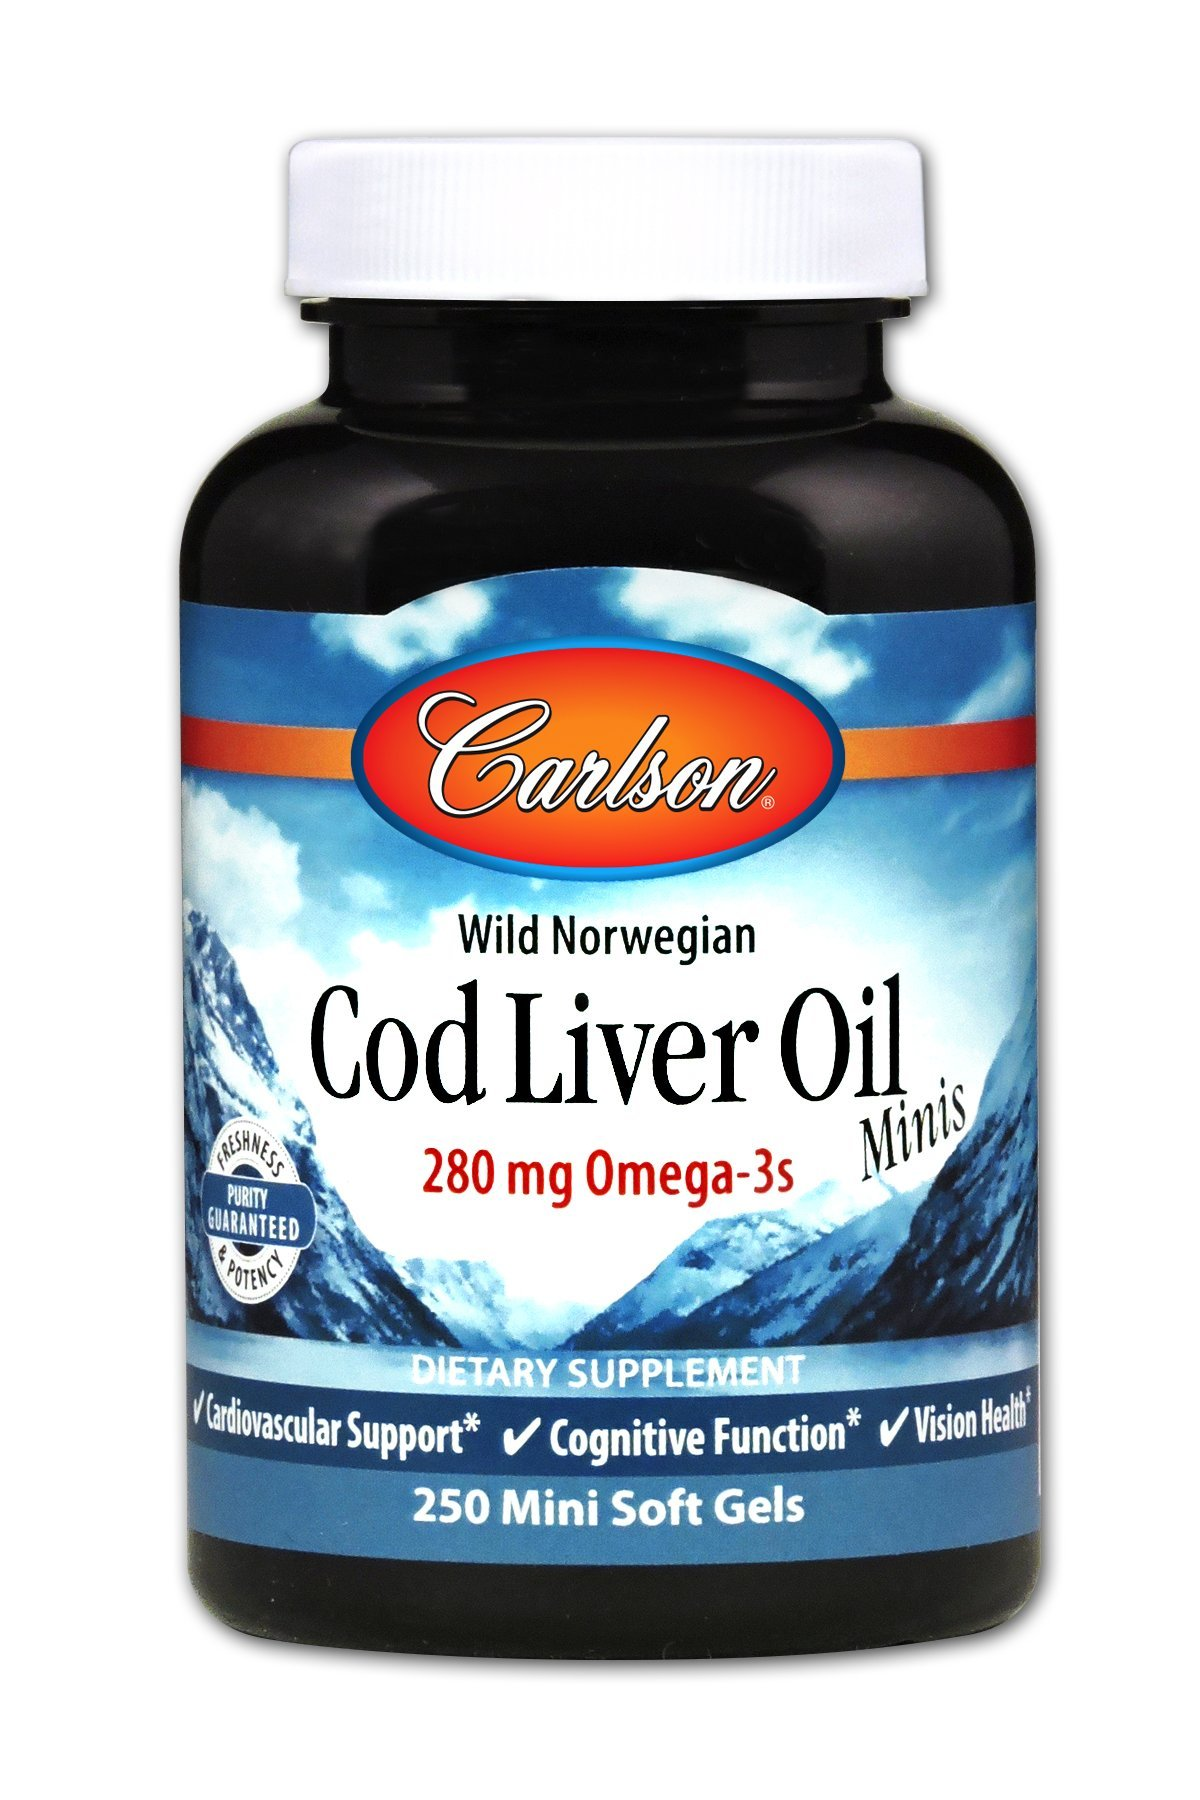 Carlson - Cod Liver Oil Minis, 280 mg Omega-3s + Vitamins A & D3, Heart Support & Cognitive Function, Vision Health, 250 Mini Soft Gels